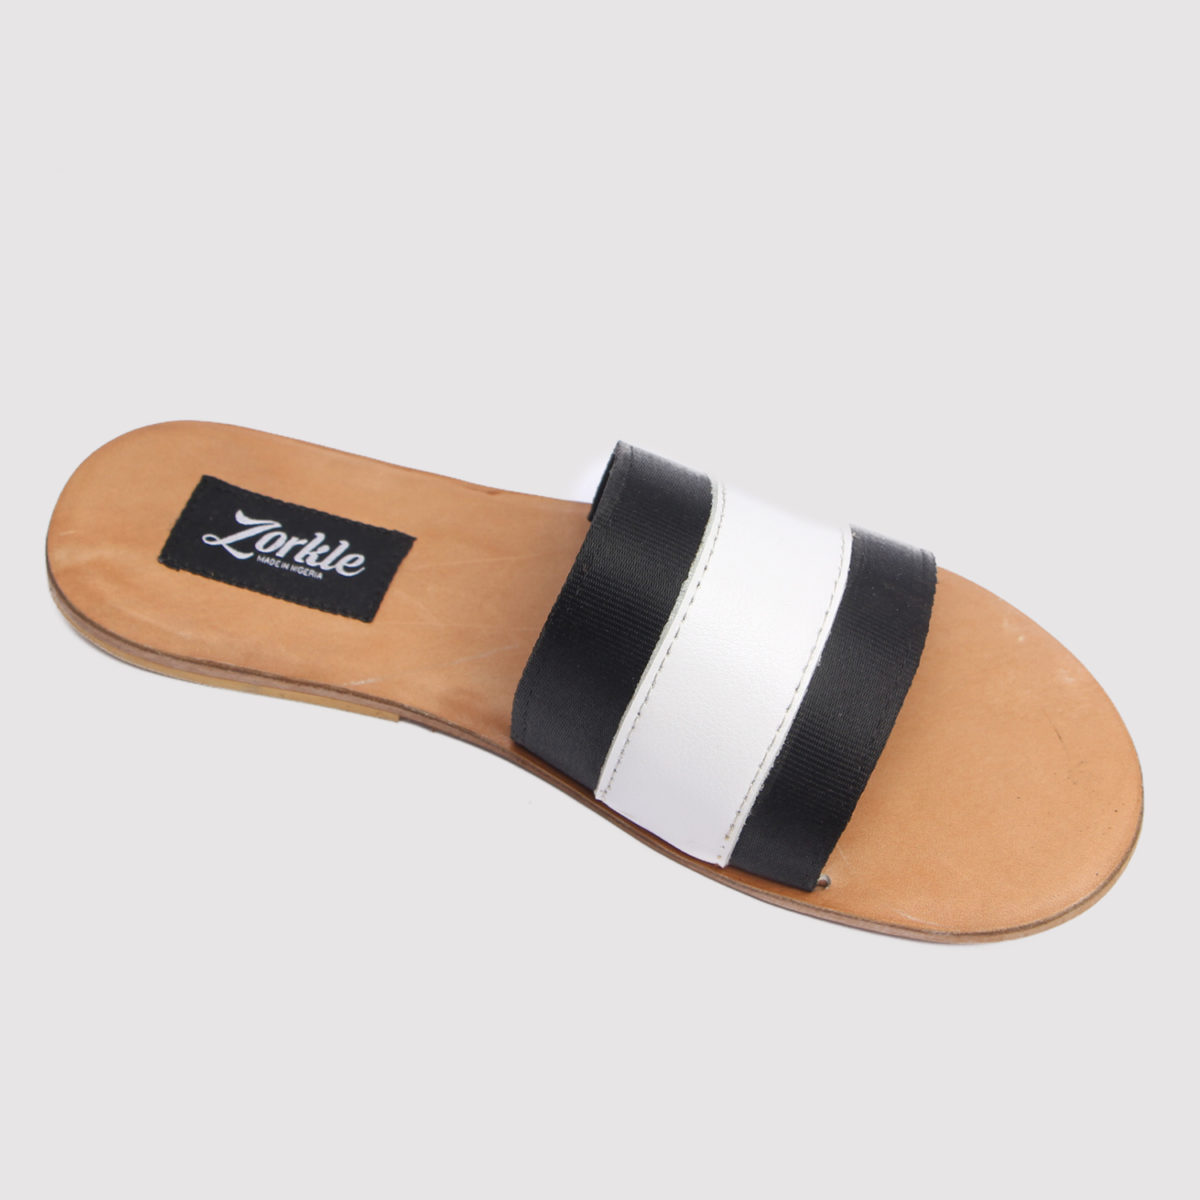 Lere flex slippers white brown leather zorkles shoes in nigeria